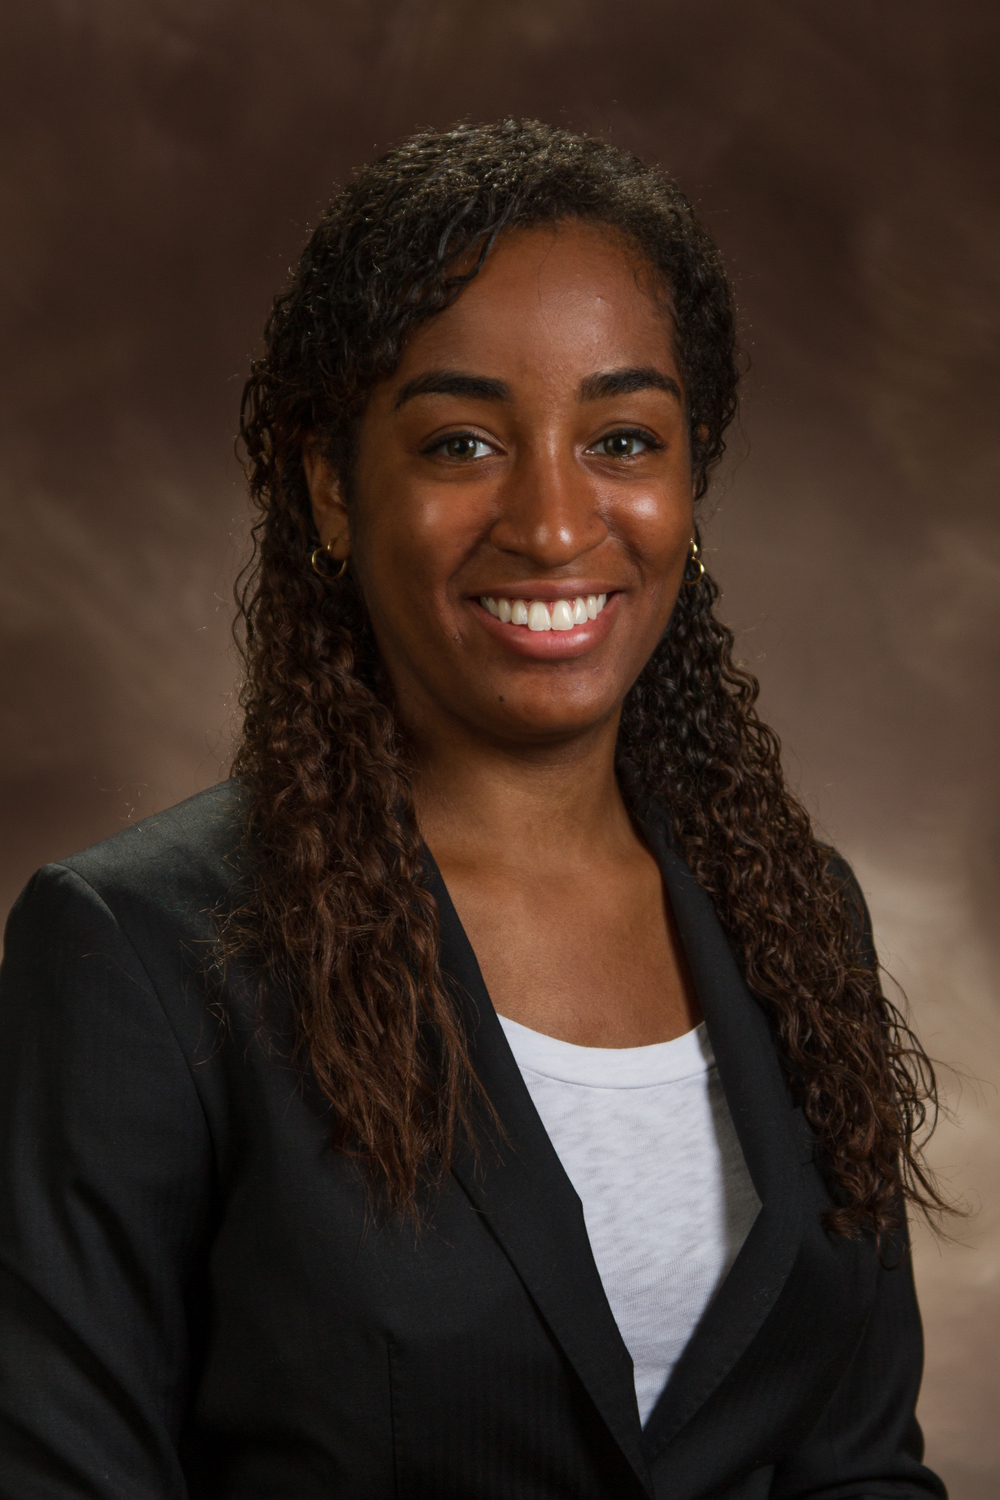 Nth Scholar Risa Reid  - University of Virginia School of Medicine  Preceptor Dr. Valerae Lewis - The University of Texas MD Anderson Cancer Center Houston, TX